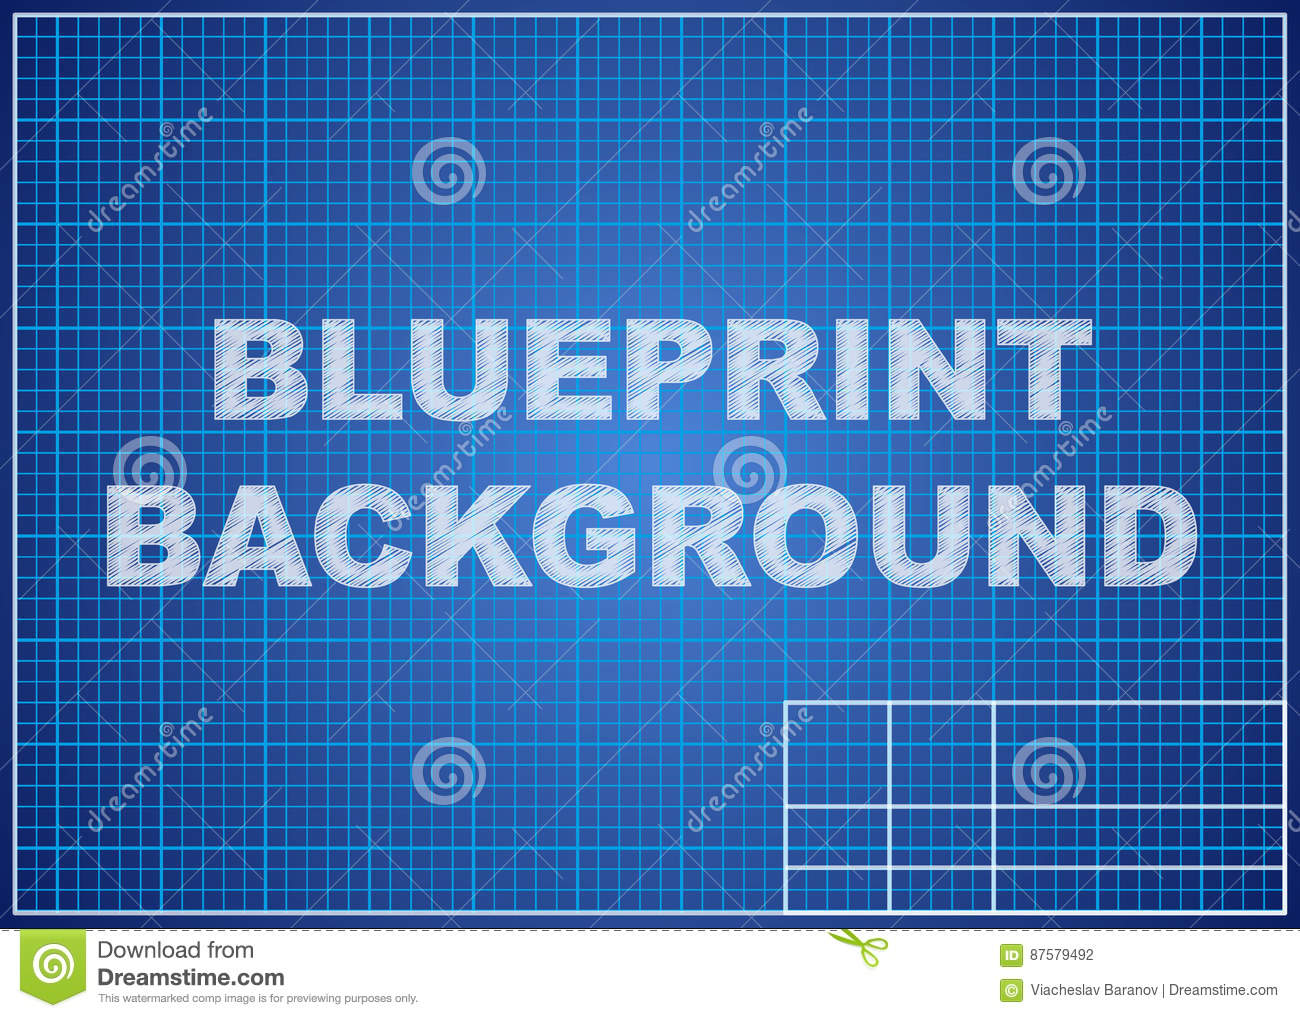 Blueprint background technical design paper stock vector blueprint background technical design paper royalty free vector malvernweather Gallery